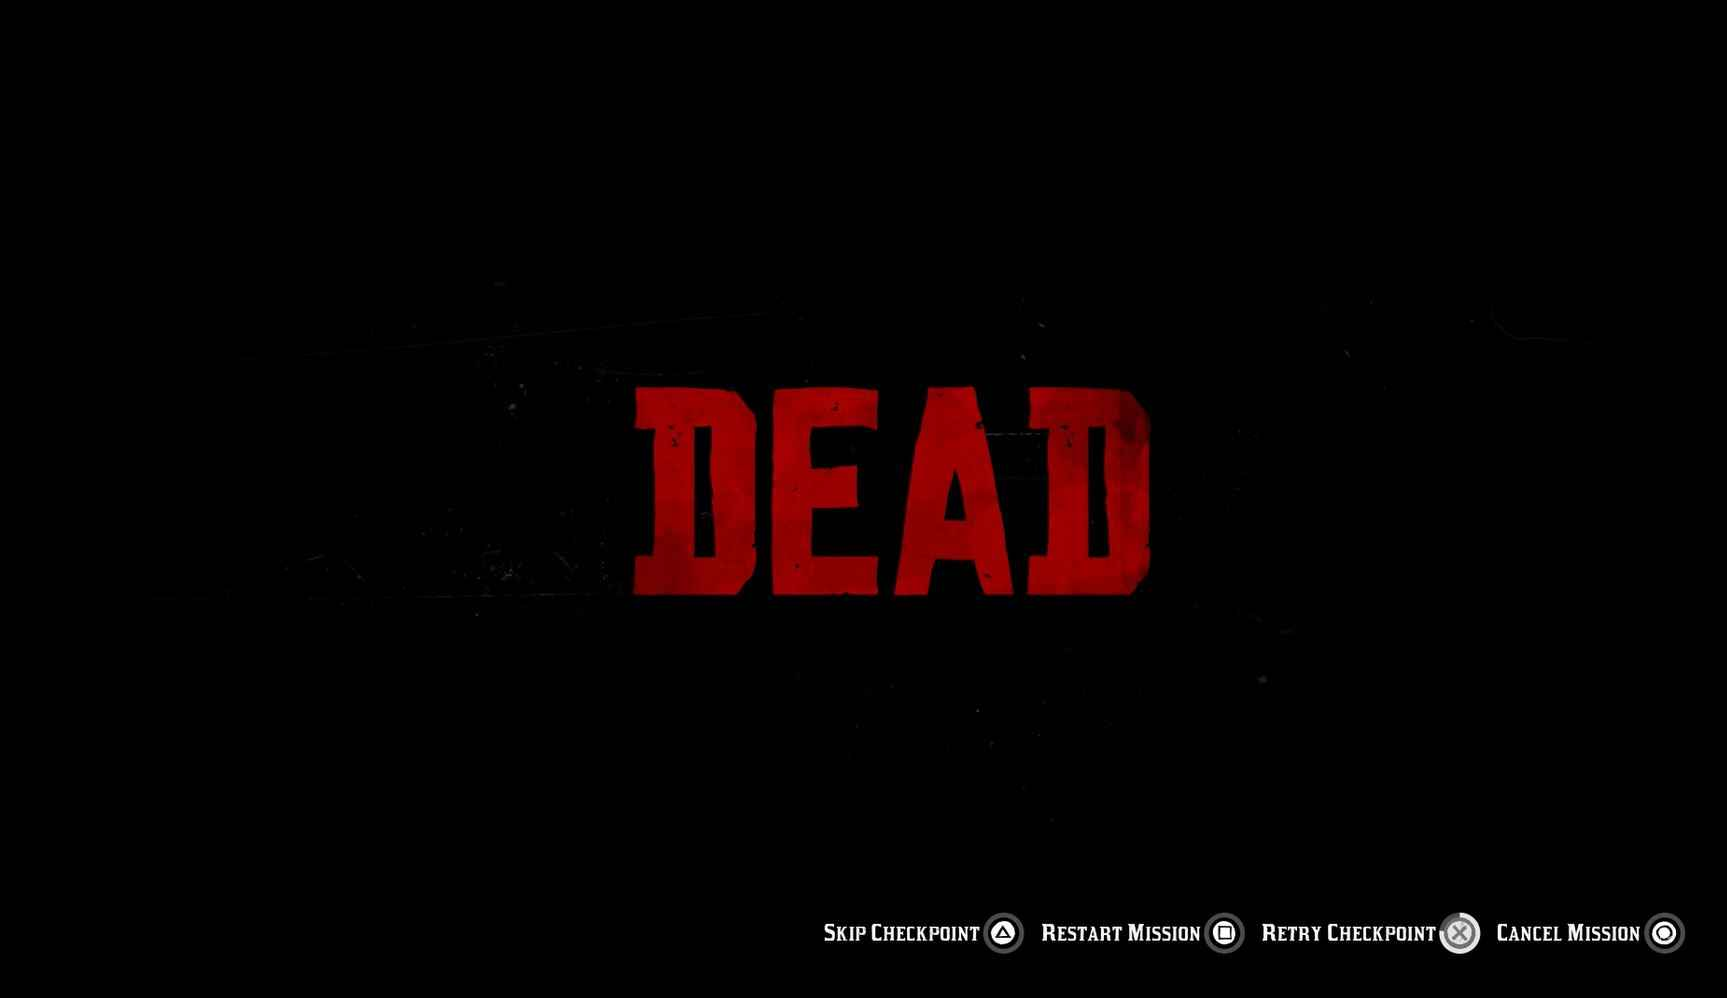 Red Dead Redemption 2 Dueling - You will see this screen a lot if you get the same bug as me.